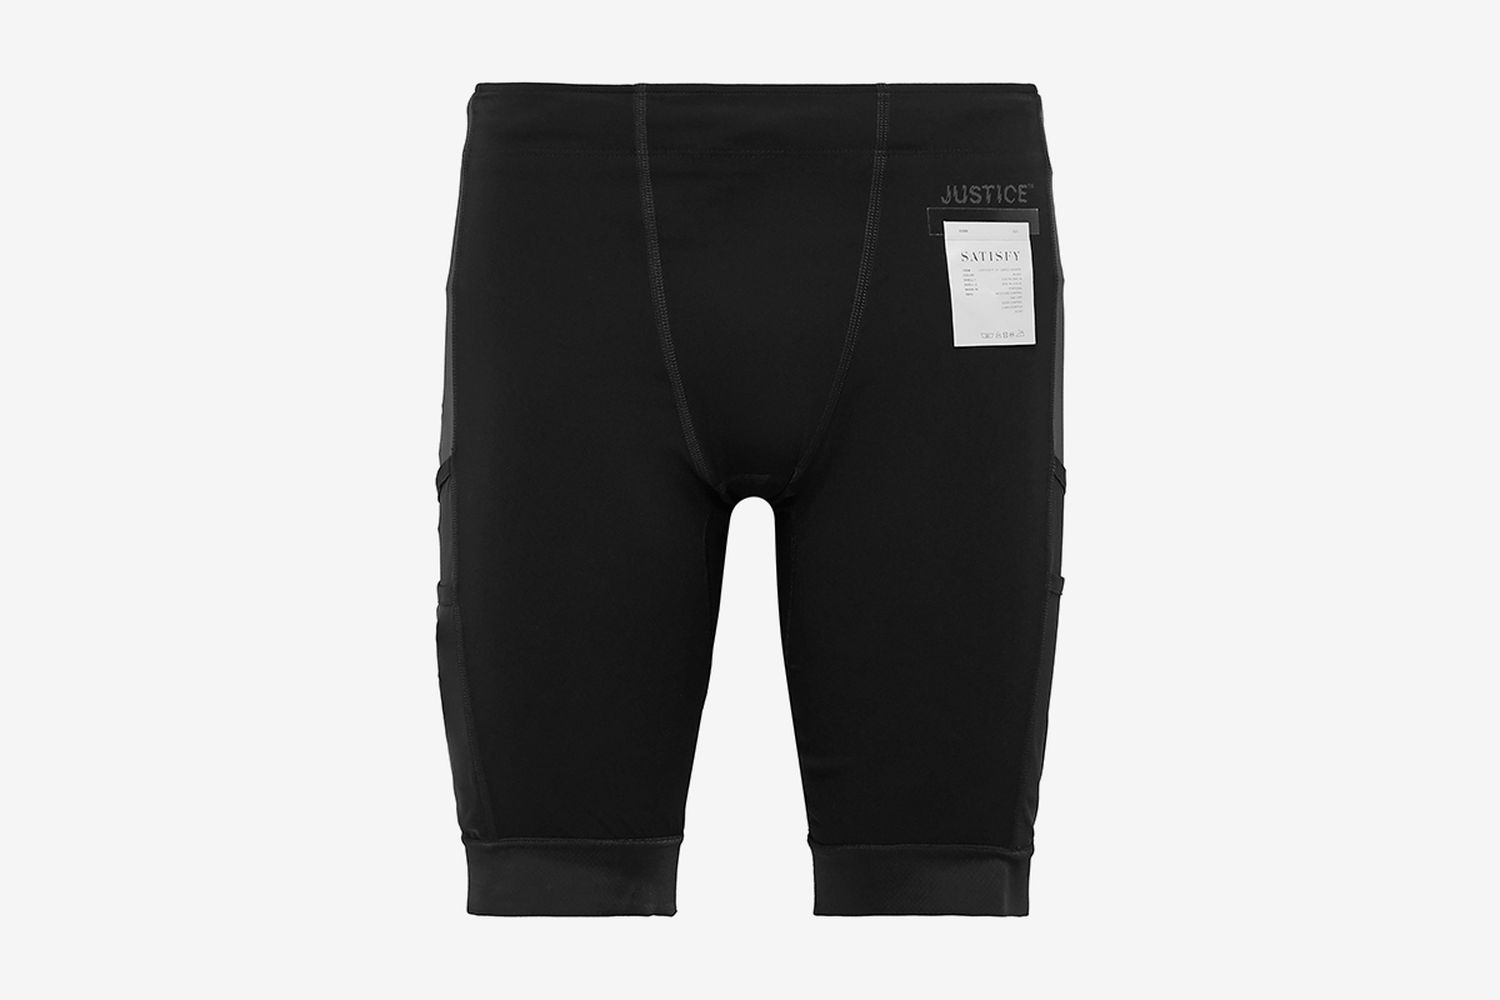 Coldblack-Panelled Justice Compression Cargo Shorts